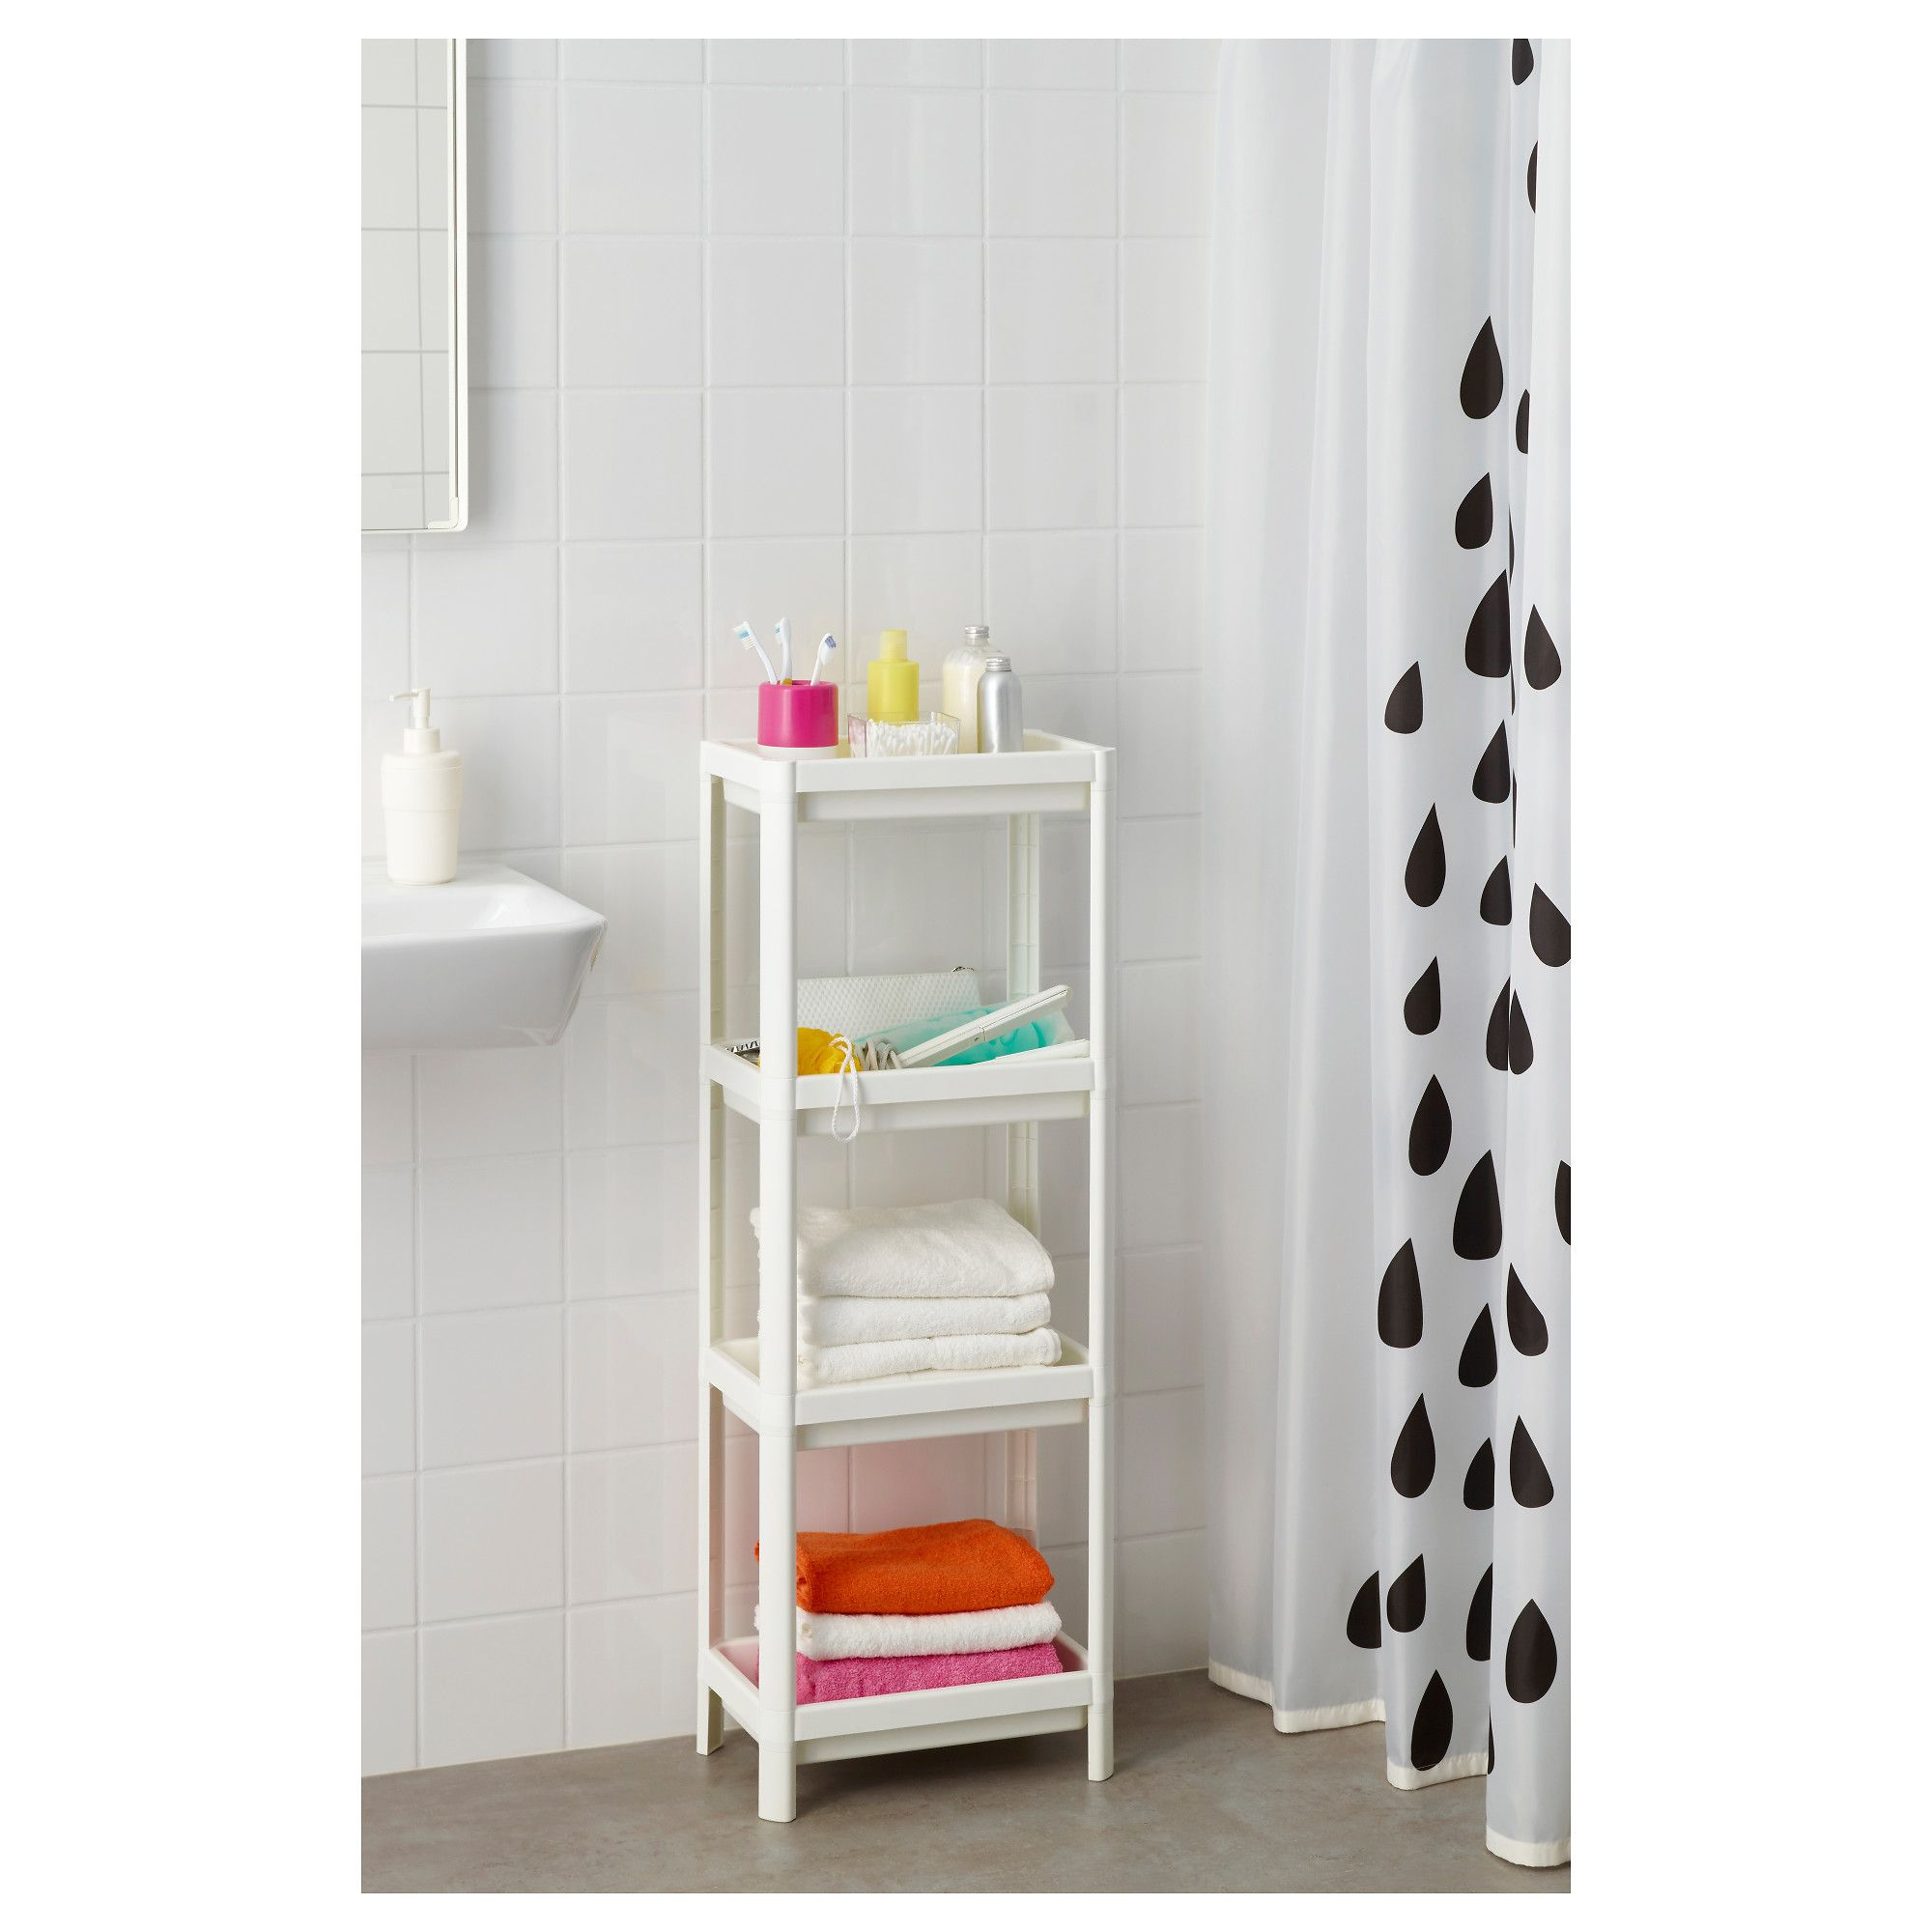 IKEA VESKEN Shelf unit white Shelves, Bathroom storage